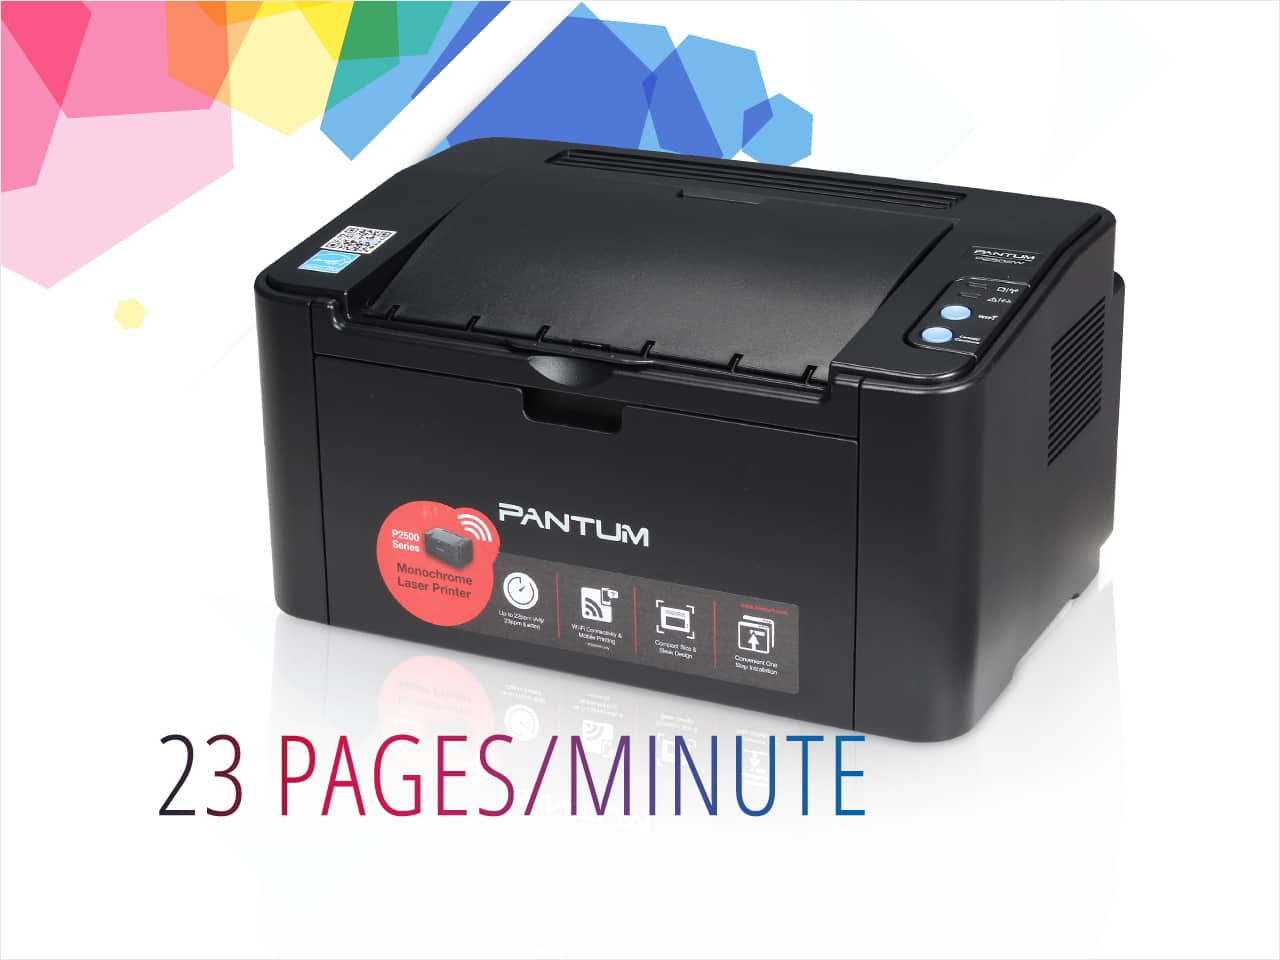 Pantum P2502W Wireless Monochrome Laser Printer  $25 + Free Shipping